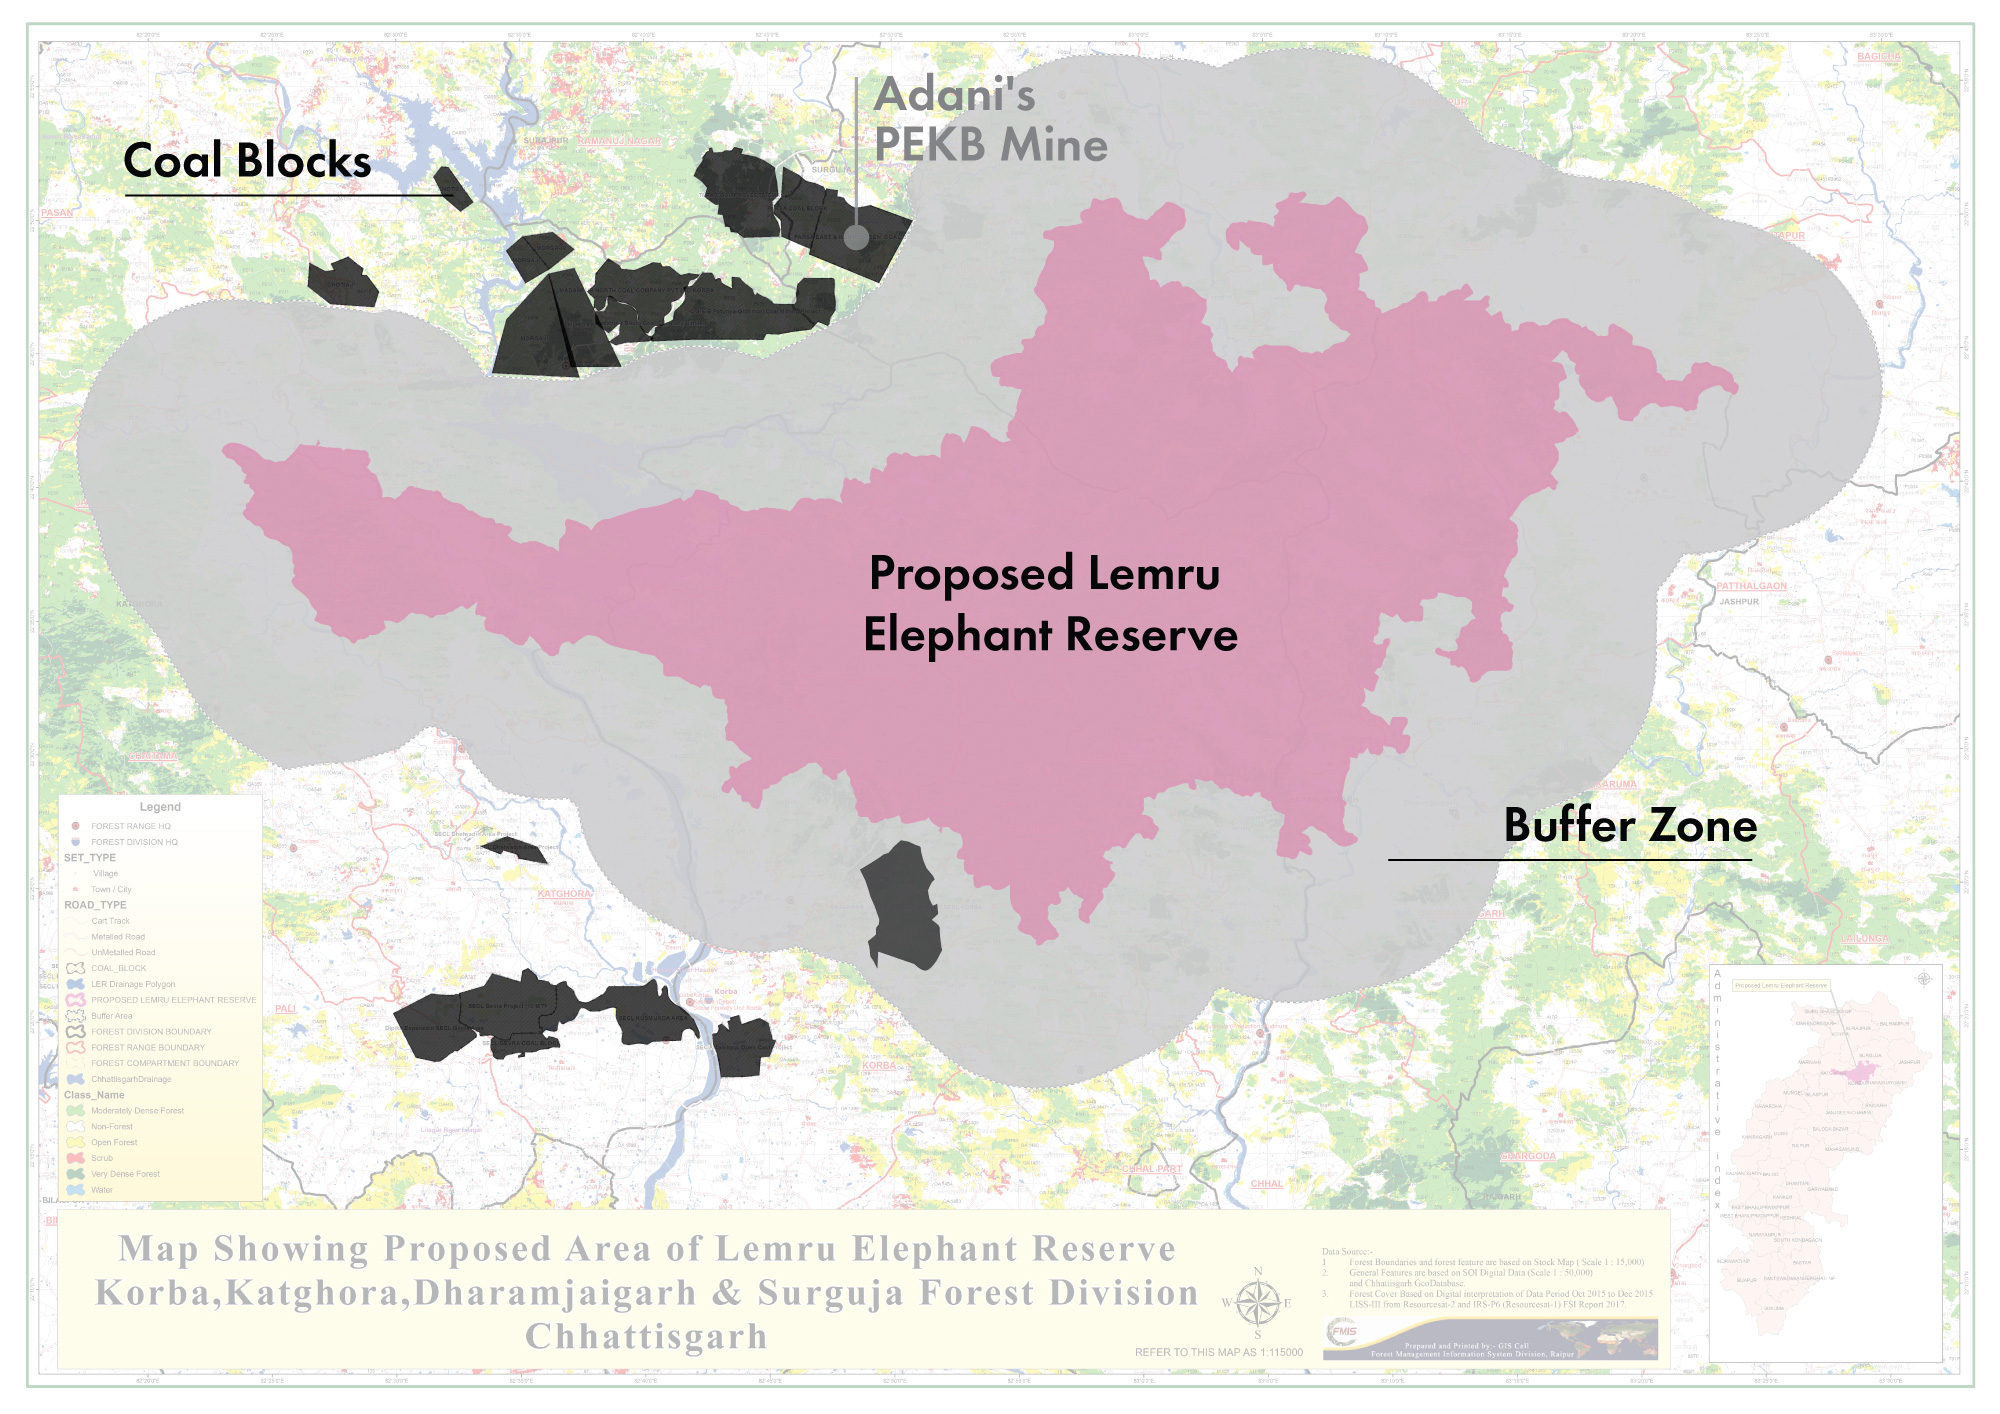 Simplified map of proposed Lemru Forest Reserve, based on high-resolution official map.